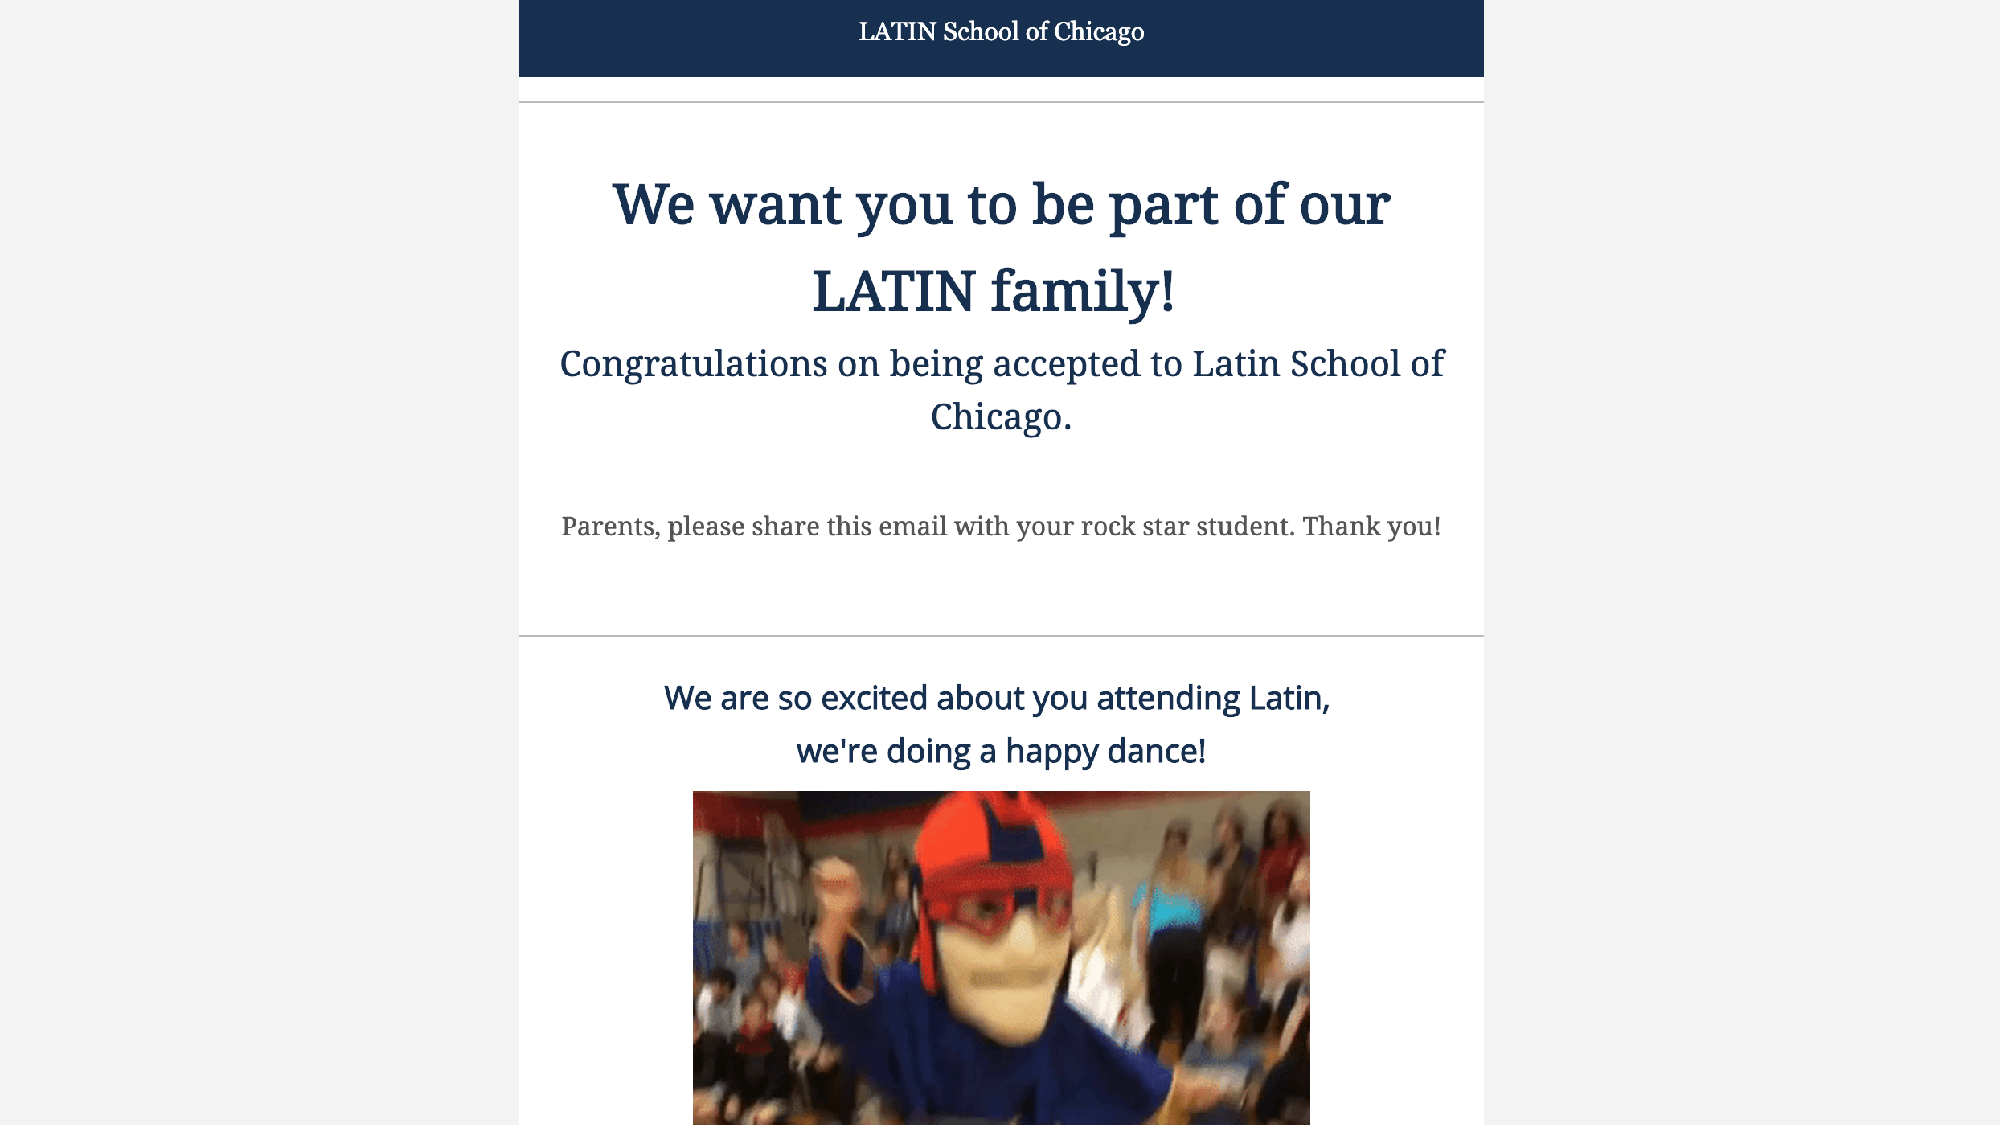 Best Message or eNotice Award Winner Latin School of Chicago (IL)